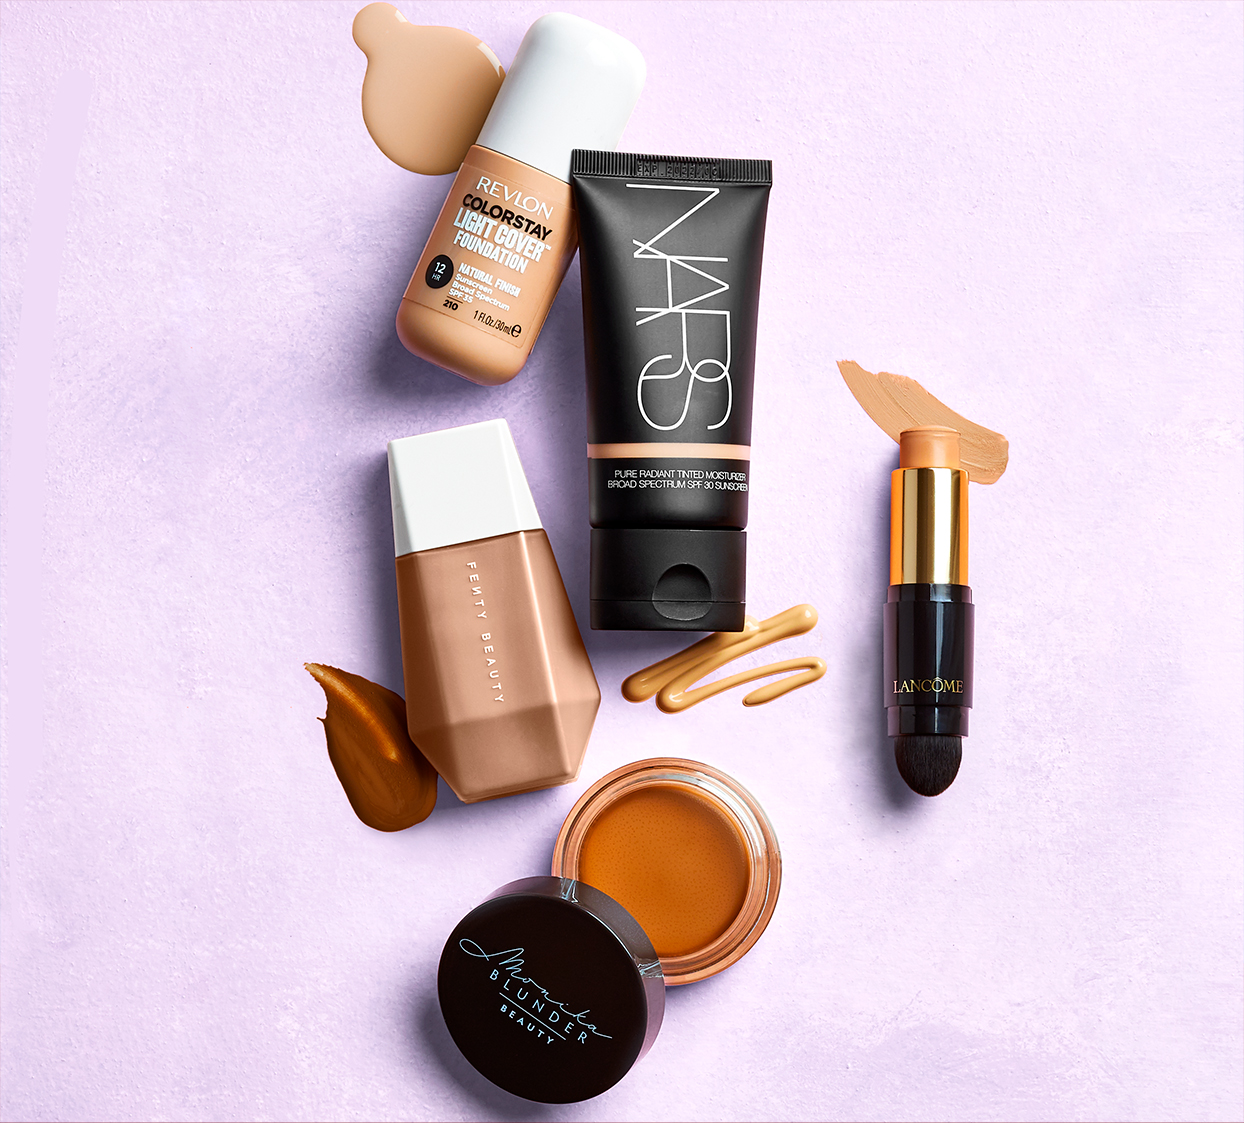 lightweight foundation makeup with color samples abstractly arranged on lavender background